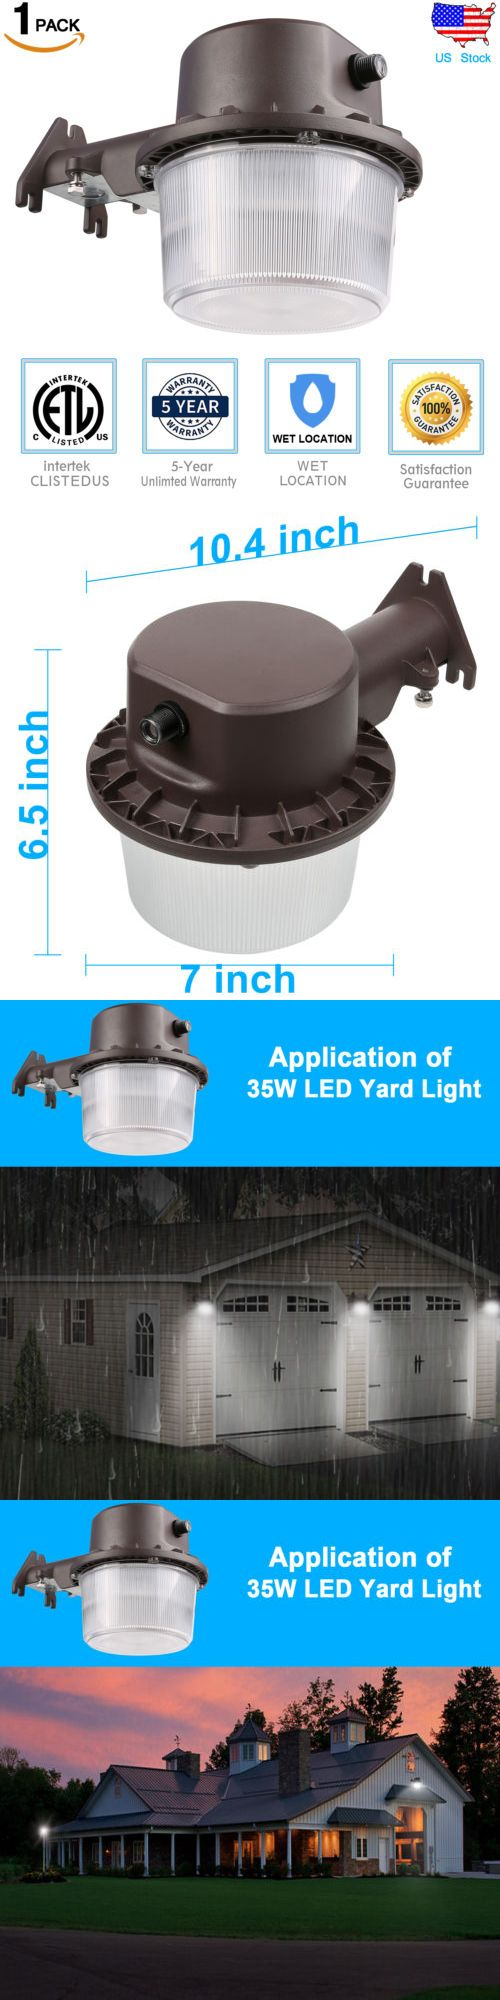 Outdoor Security and Floodlights 183393: Outdoor 35W Led Wall Mount Area Security Light Dusk To Dawn 300W Equivalent -> BUY IT NOW ONLY: $39.99 on eBay!